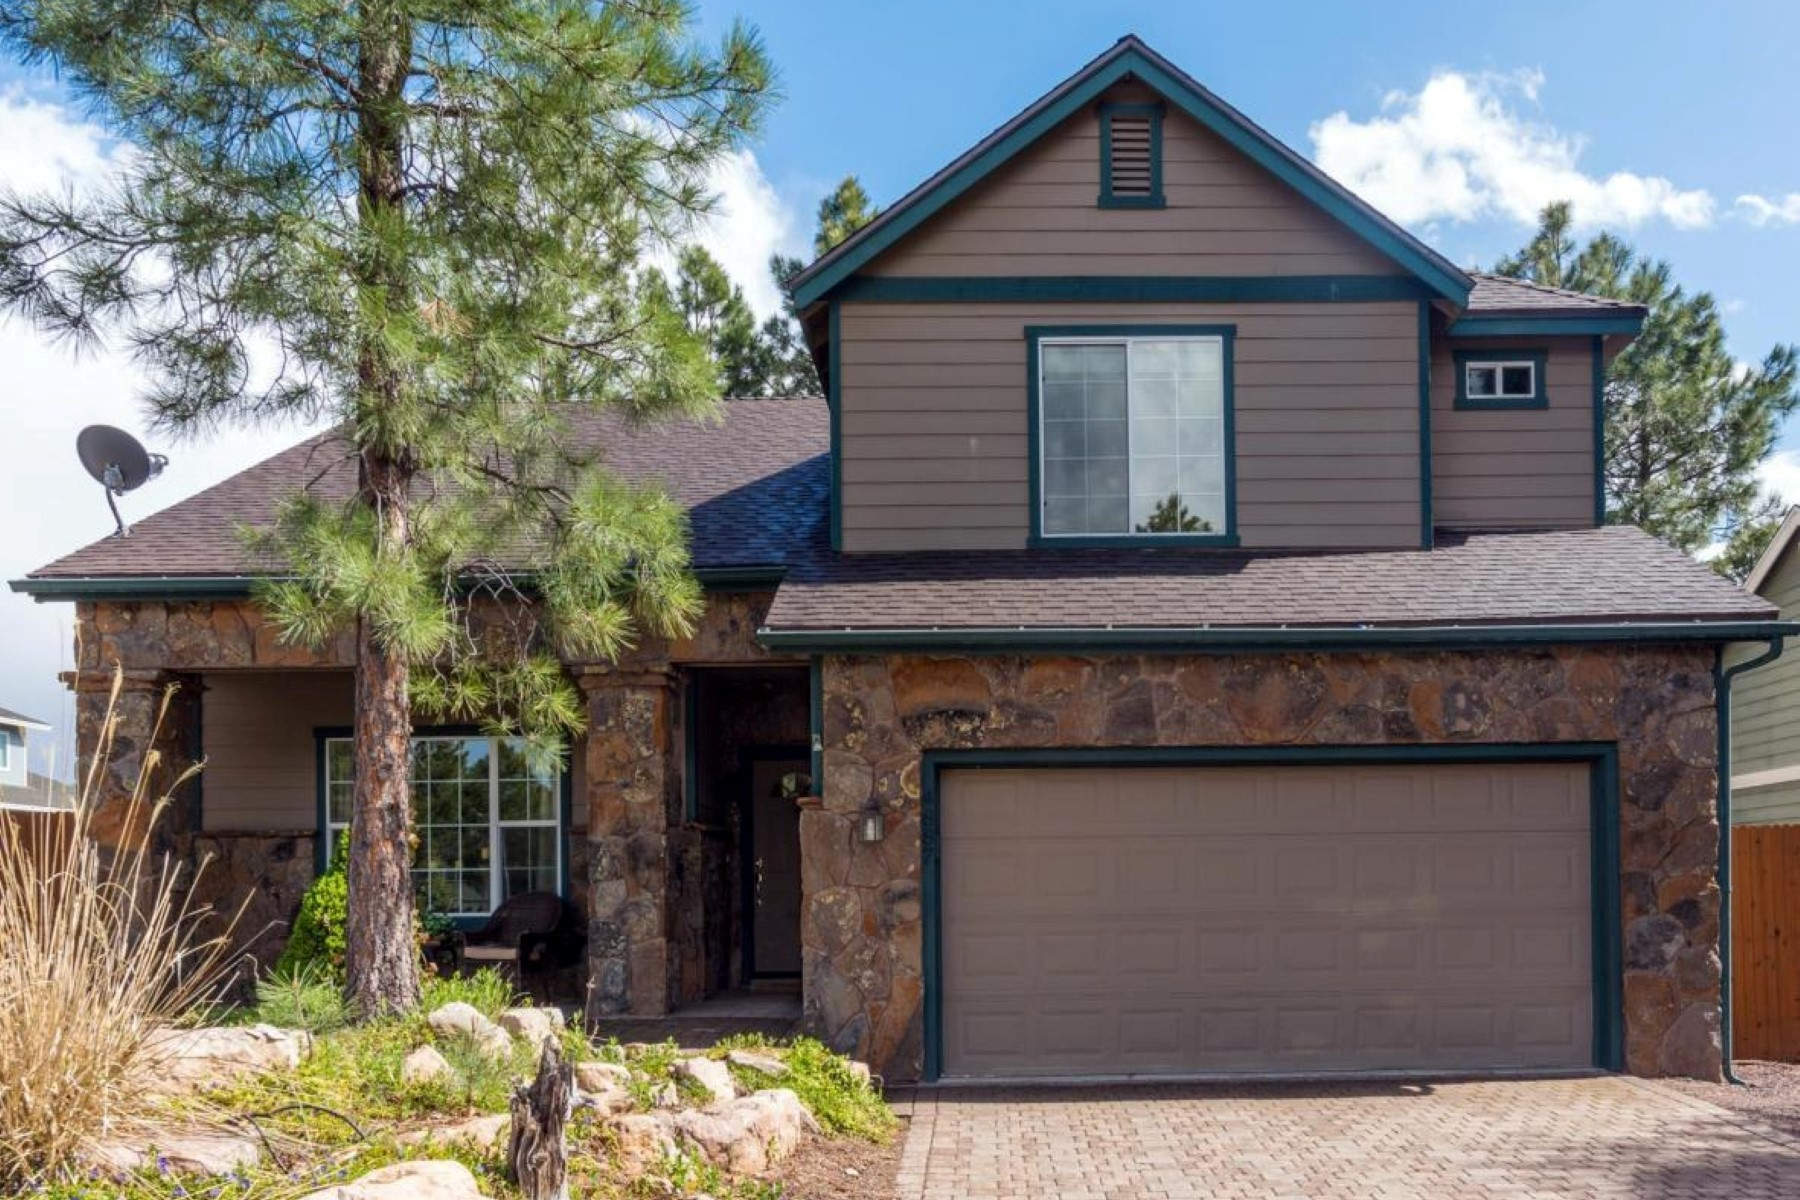 Single Family Home for Sale at Spacious multi level home 4887 S Elves Chasm Trl Flagstaff, Arizona, 86001 United States